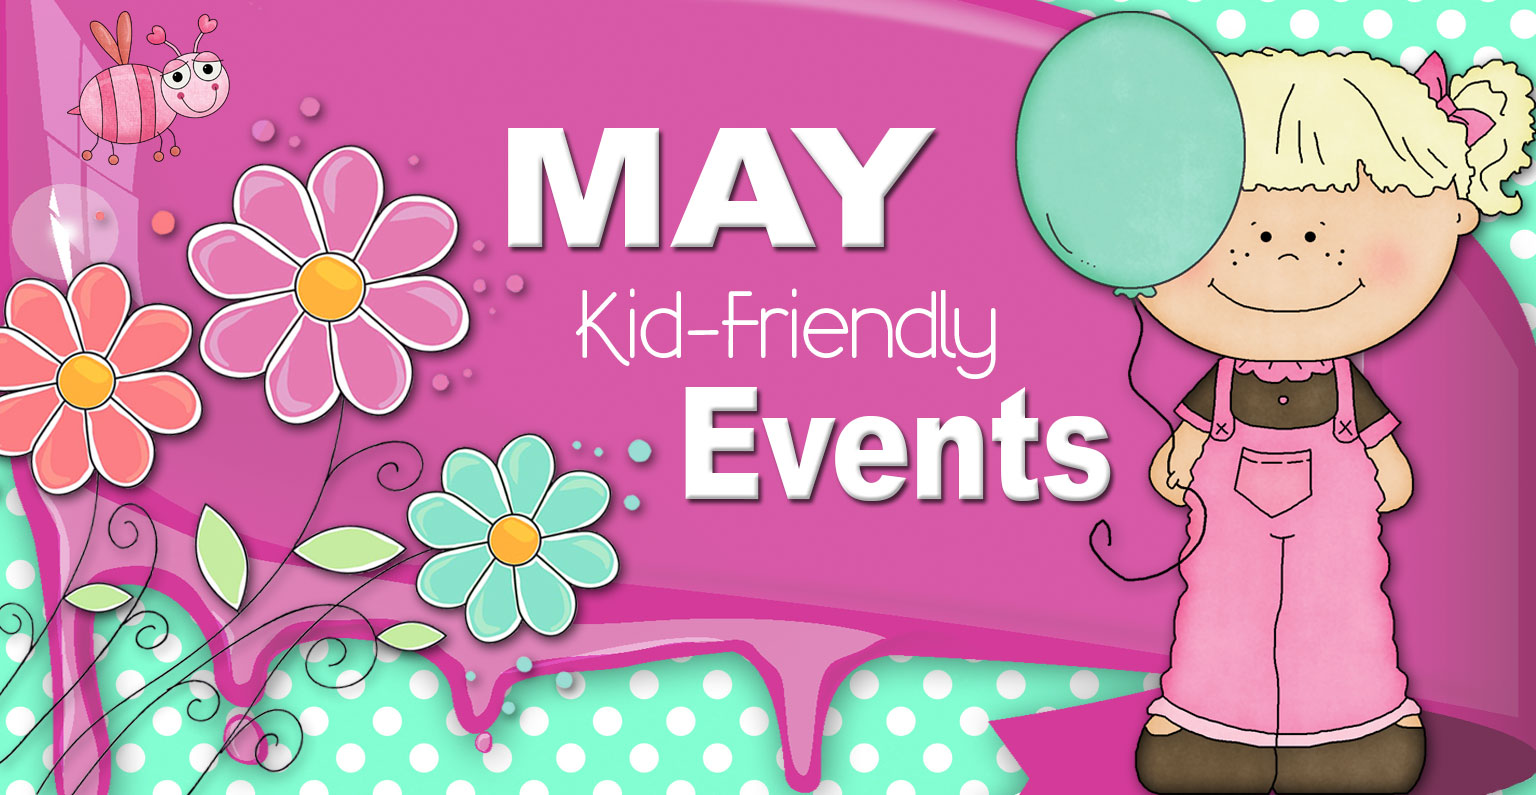 May Events for Kids!